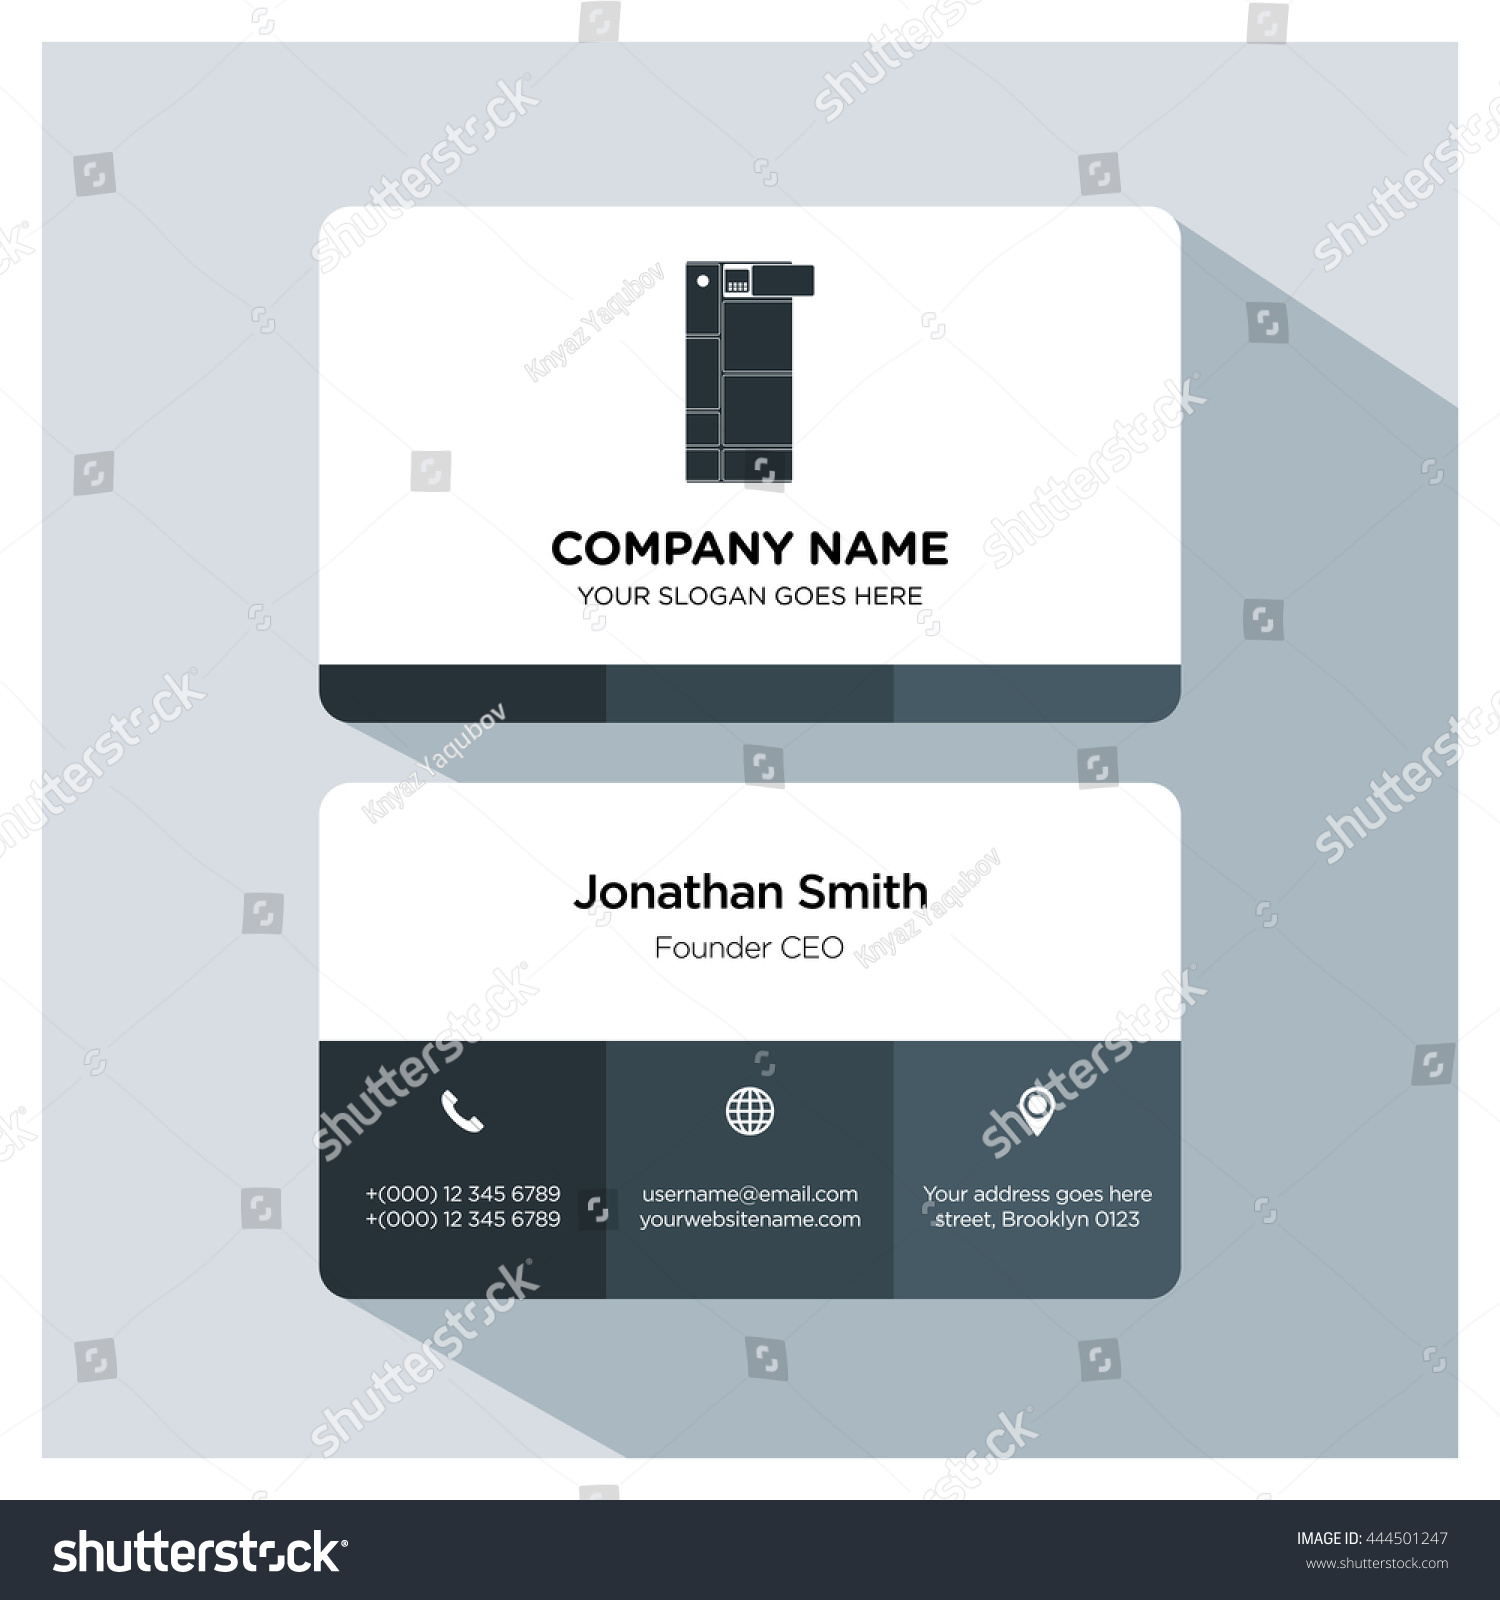 Phone icon for business cards images free business cards phone icon business card choice image free business cards modular phone icon business card template stock magicingreecefo Images